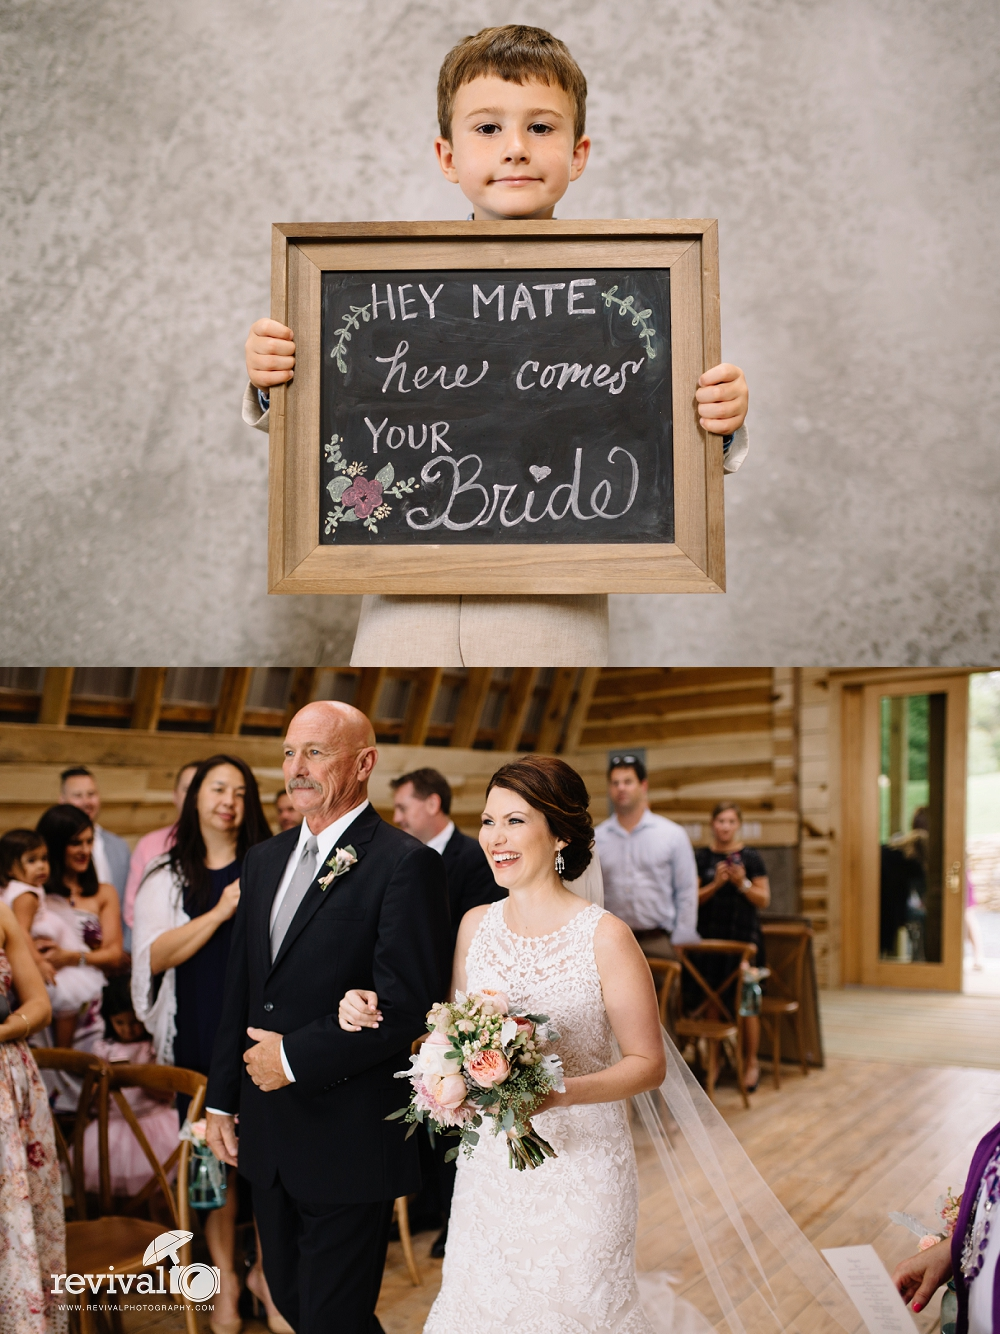 Troy + Amy: A Mountain Destination Wedding at Overlook Barn NC Wedding Photographers Husband Wife Team Revival Photography www.revivalphotography.com